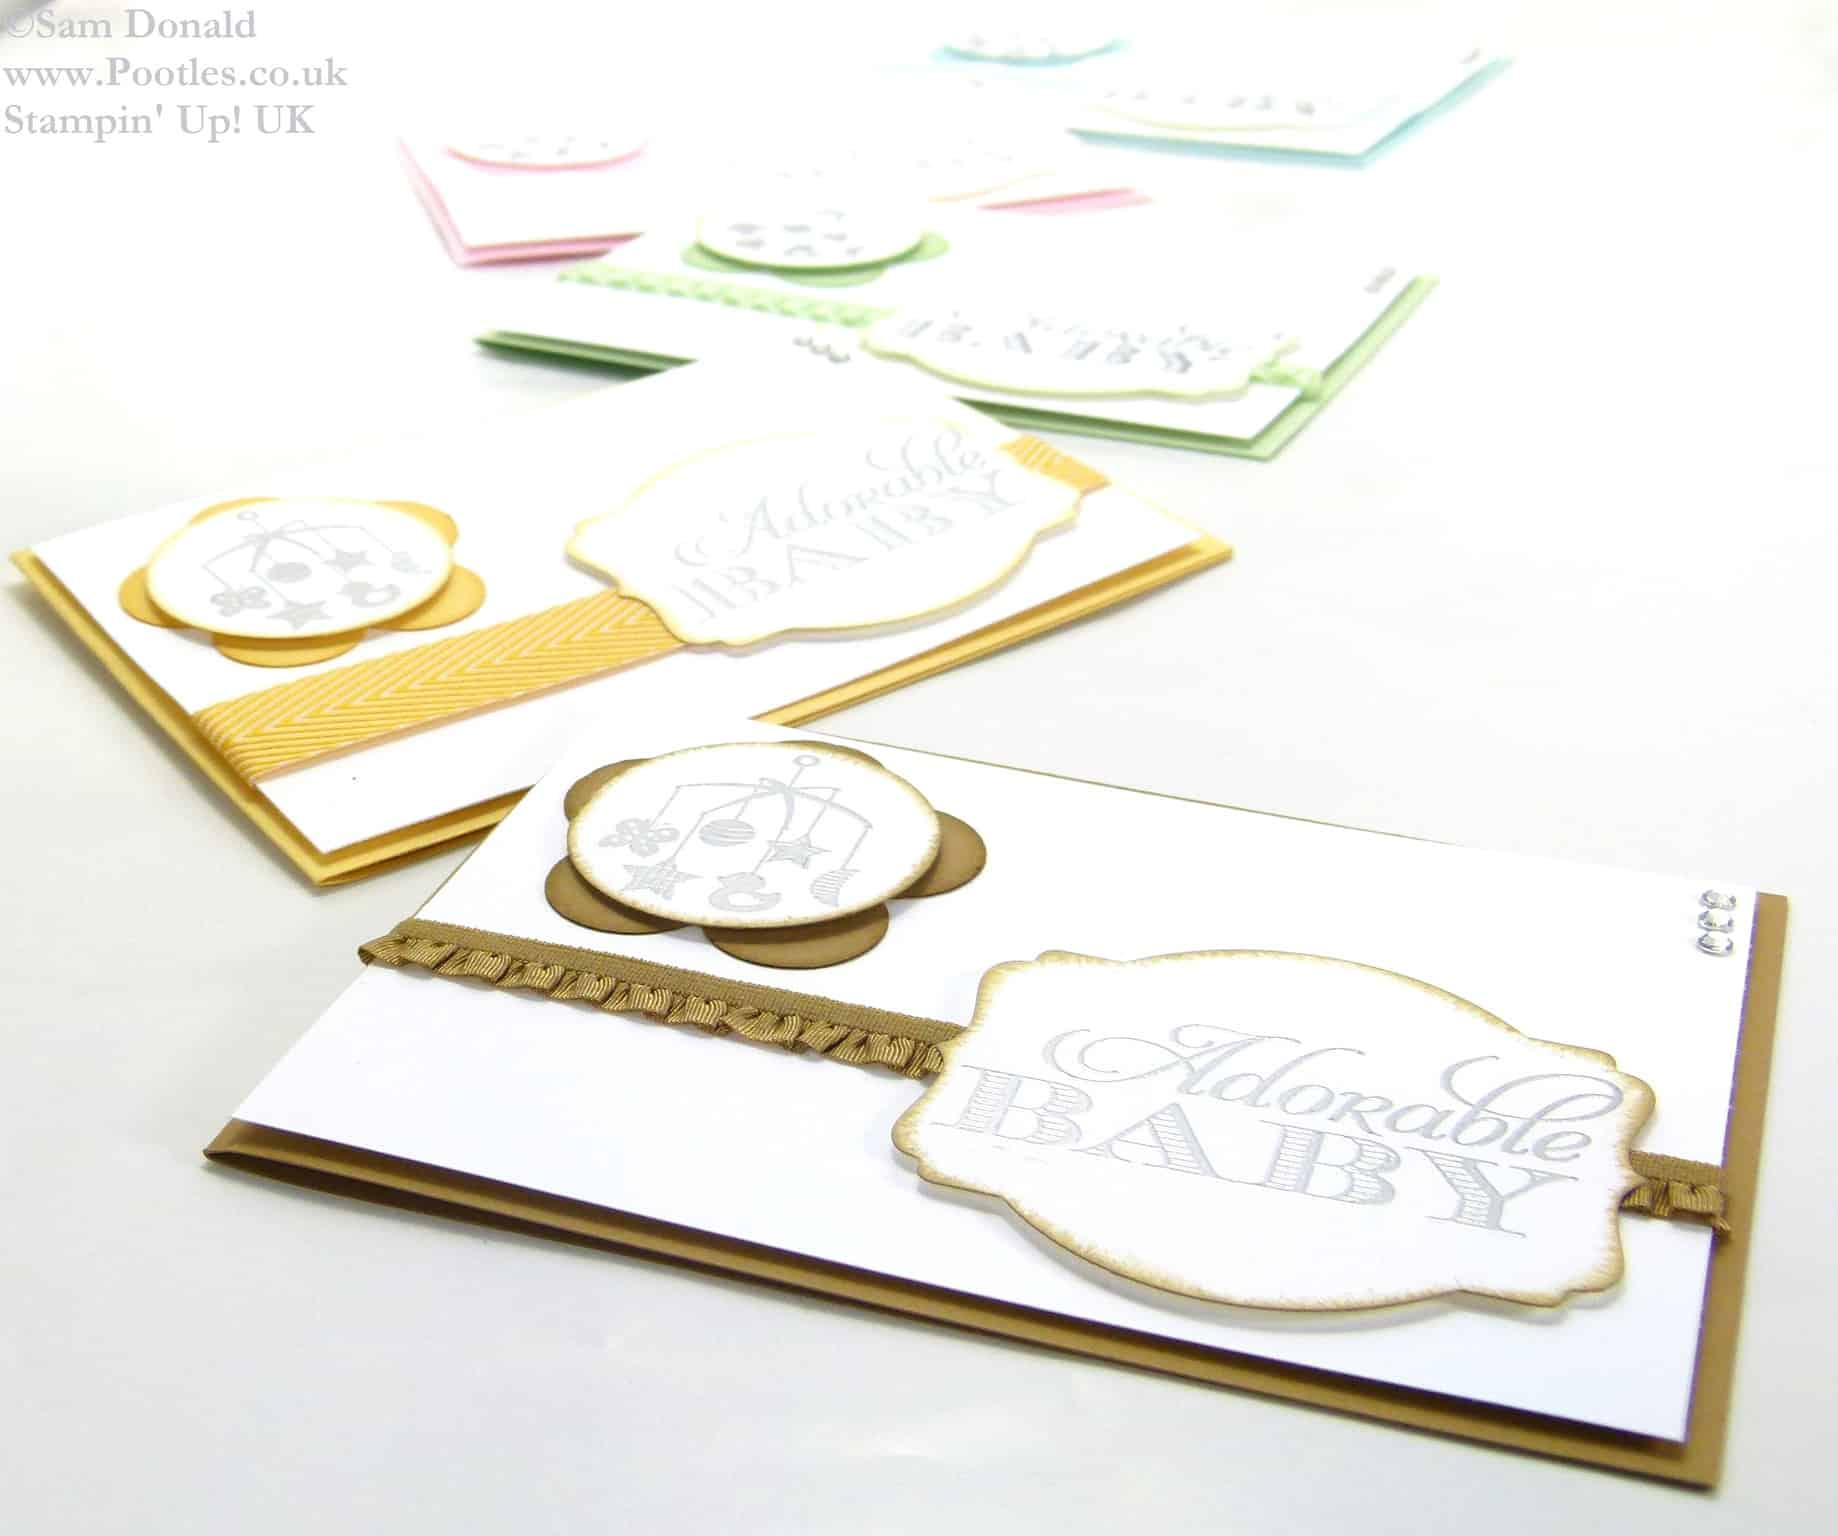 POOTLES Stampin Up UK Baby, the Sweetest Gift